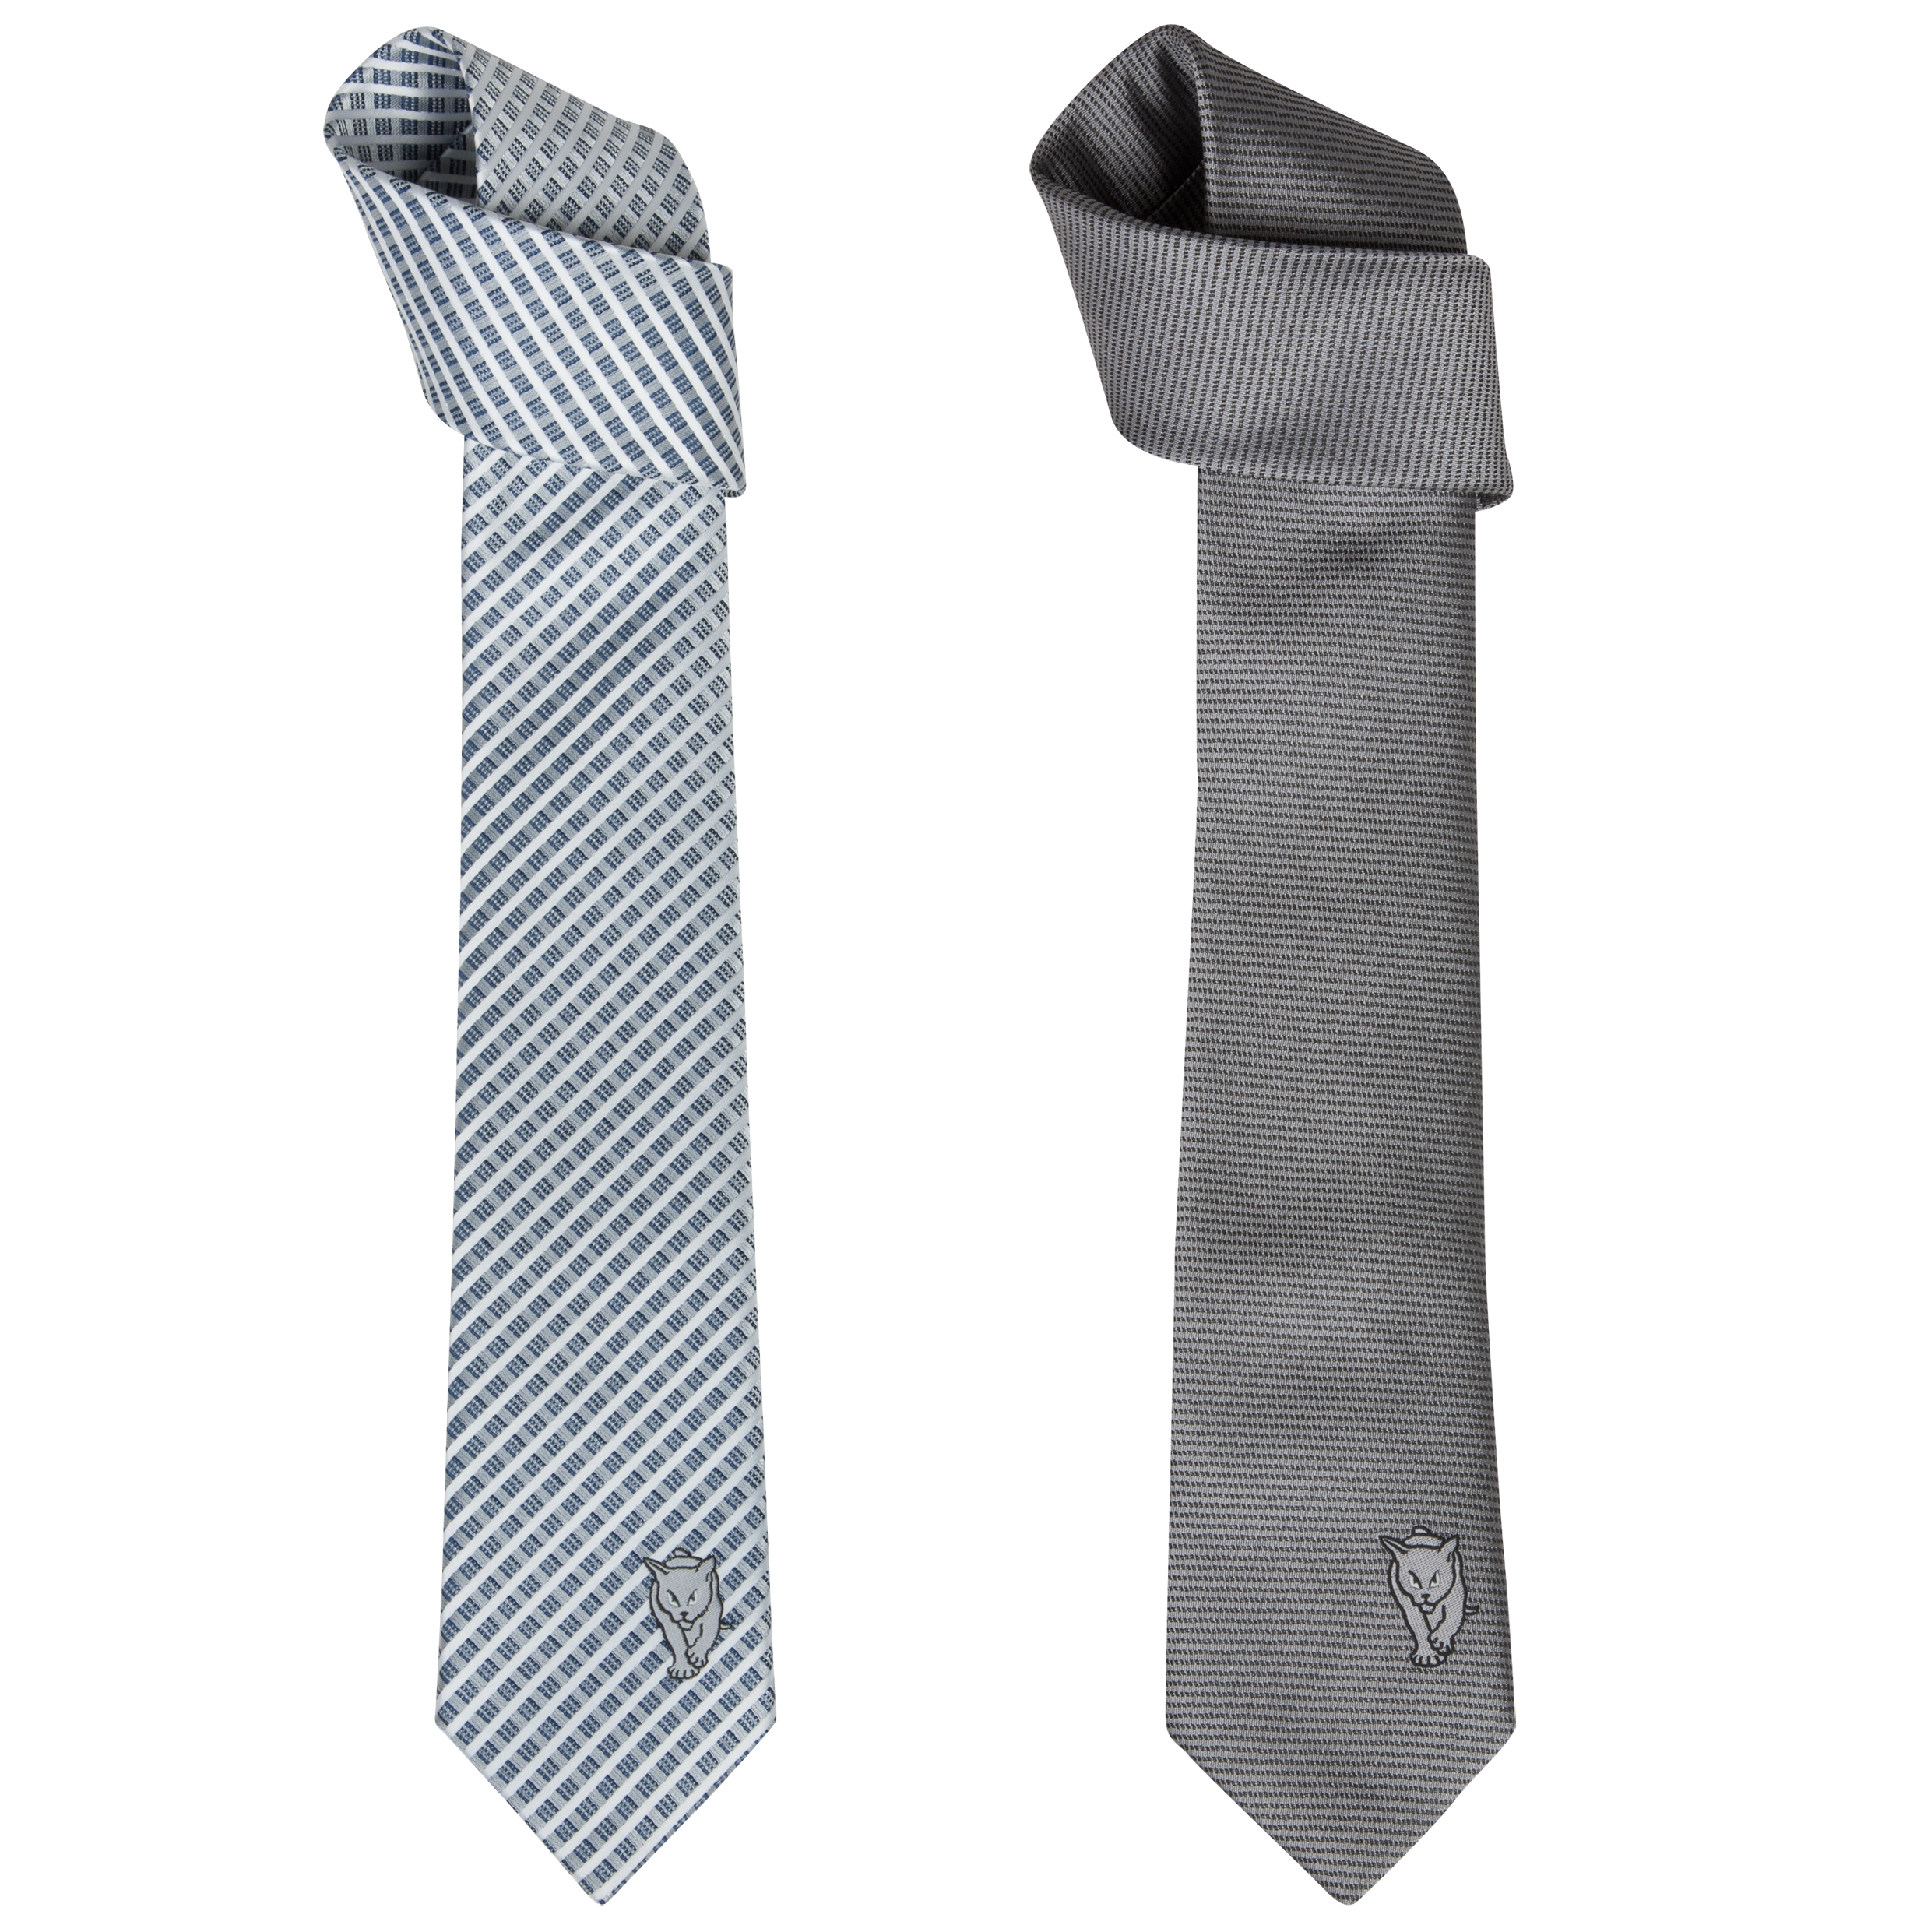 Sunderland 2 Pack of Black Cat Polyester Ties - Grey